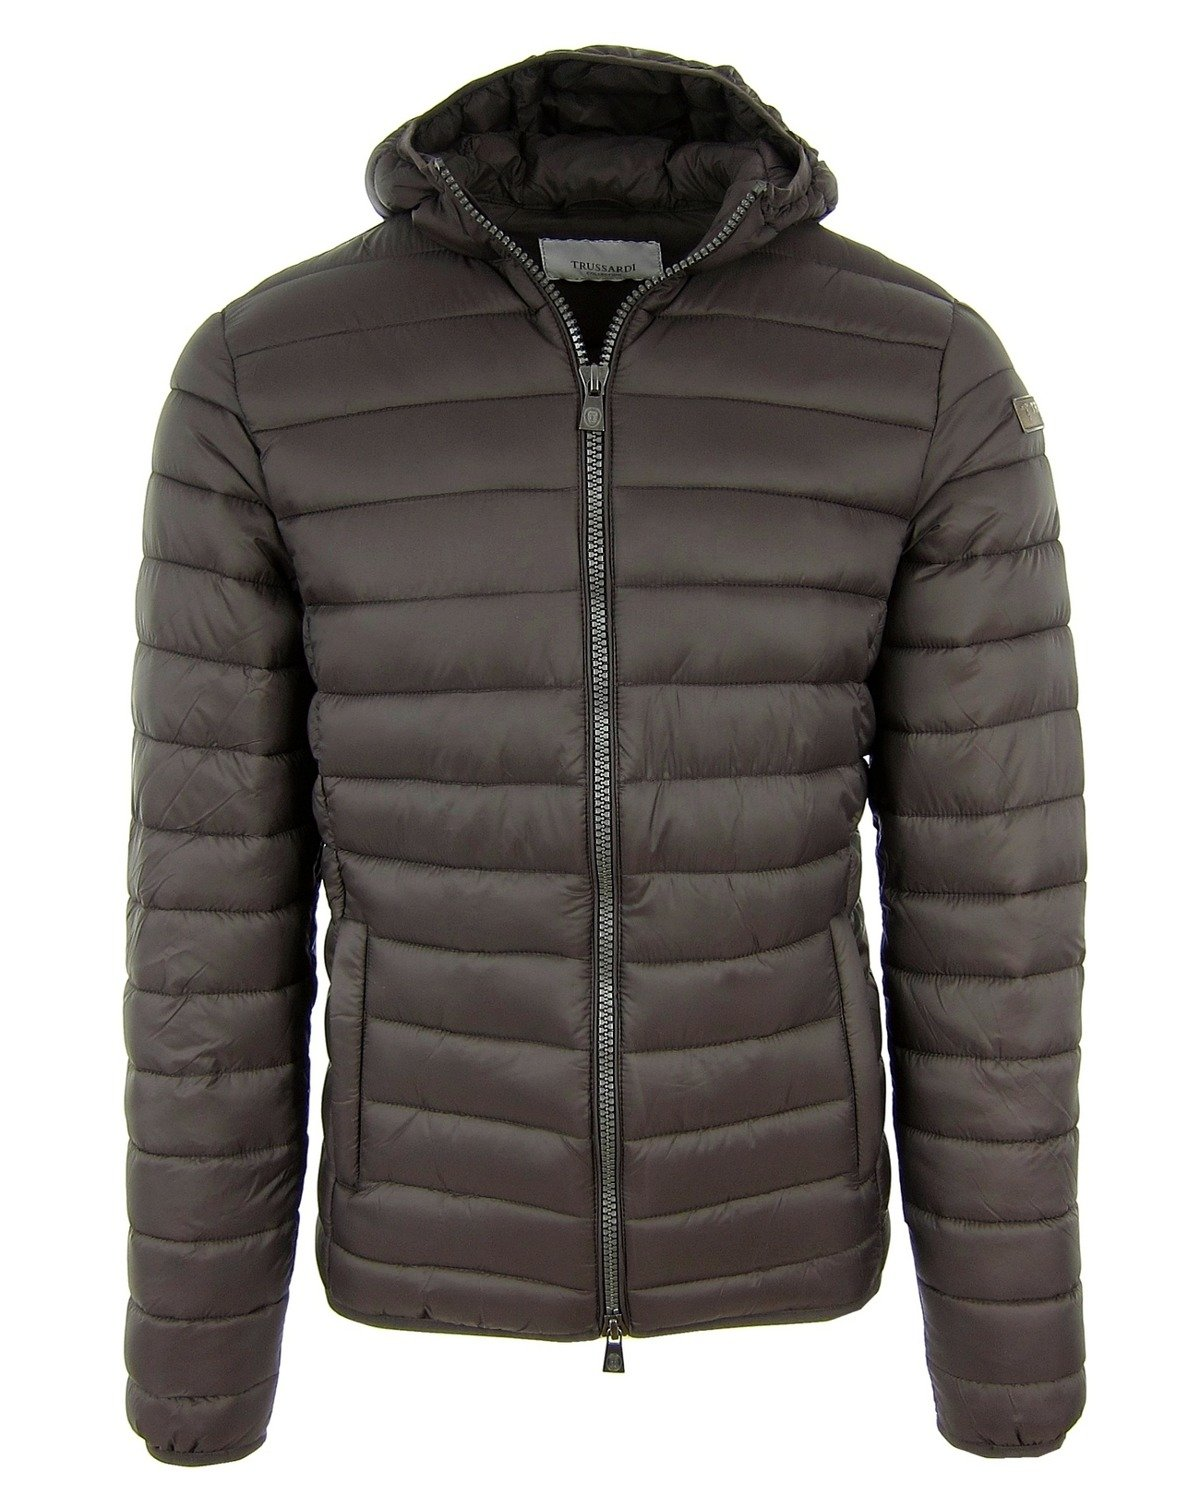 df3b9db6ab56 Click to zoom  TRUSSARDI Collection Gavello Herren Men Steppjacke Jacke Jacket  Braun Brown